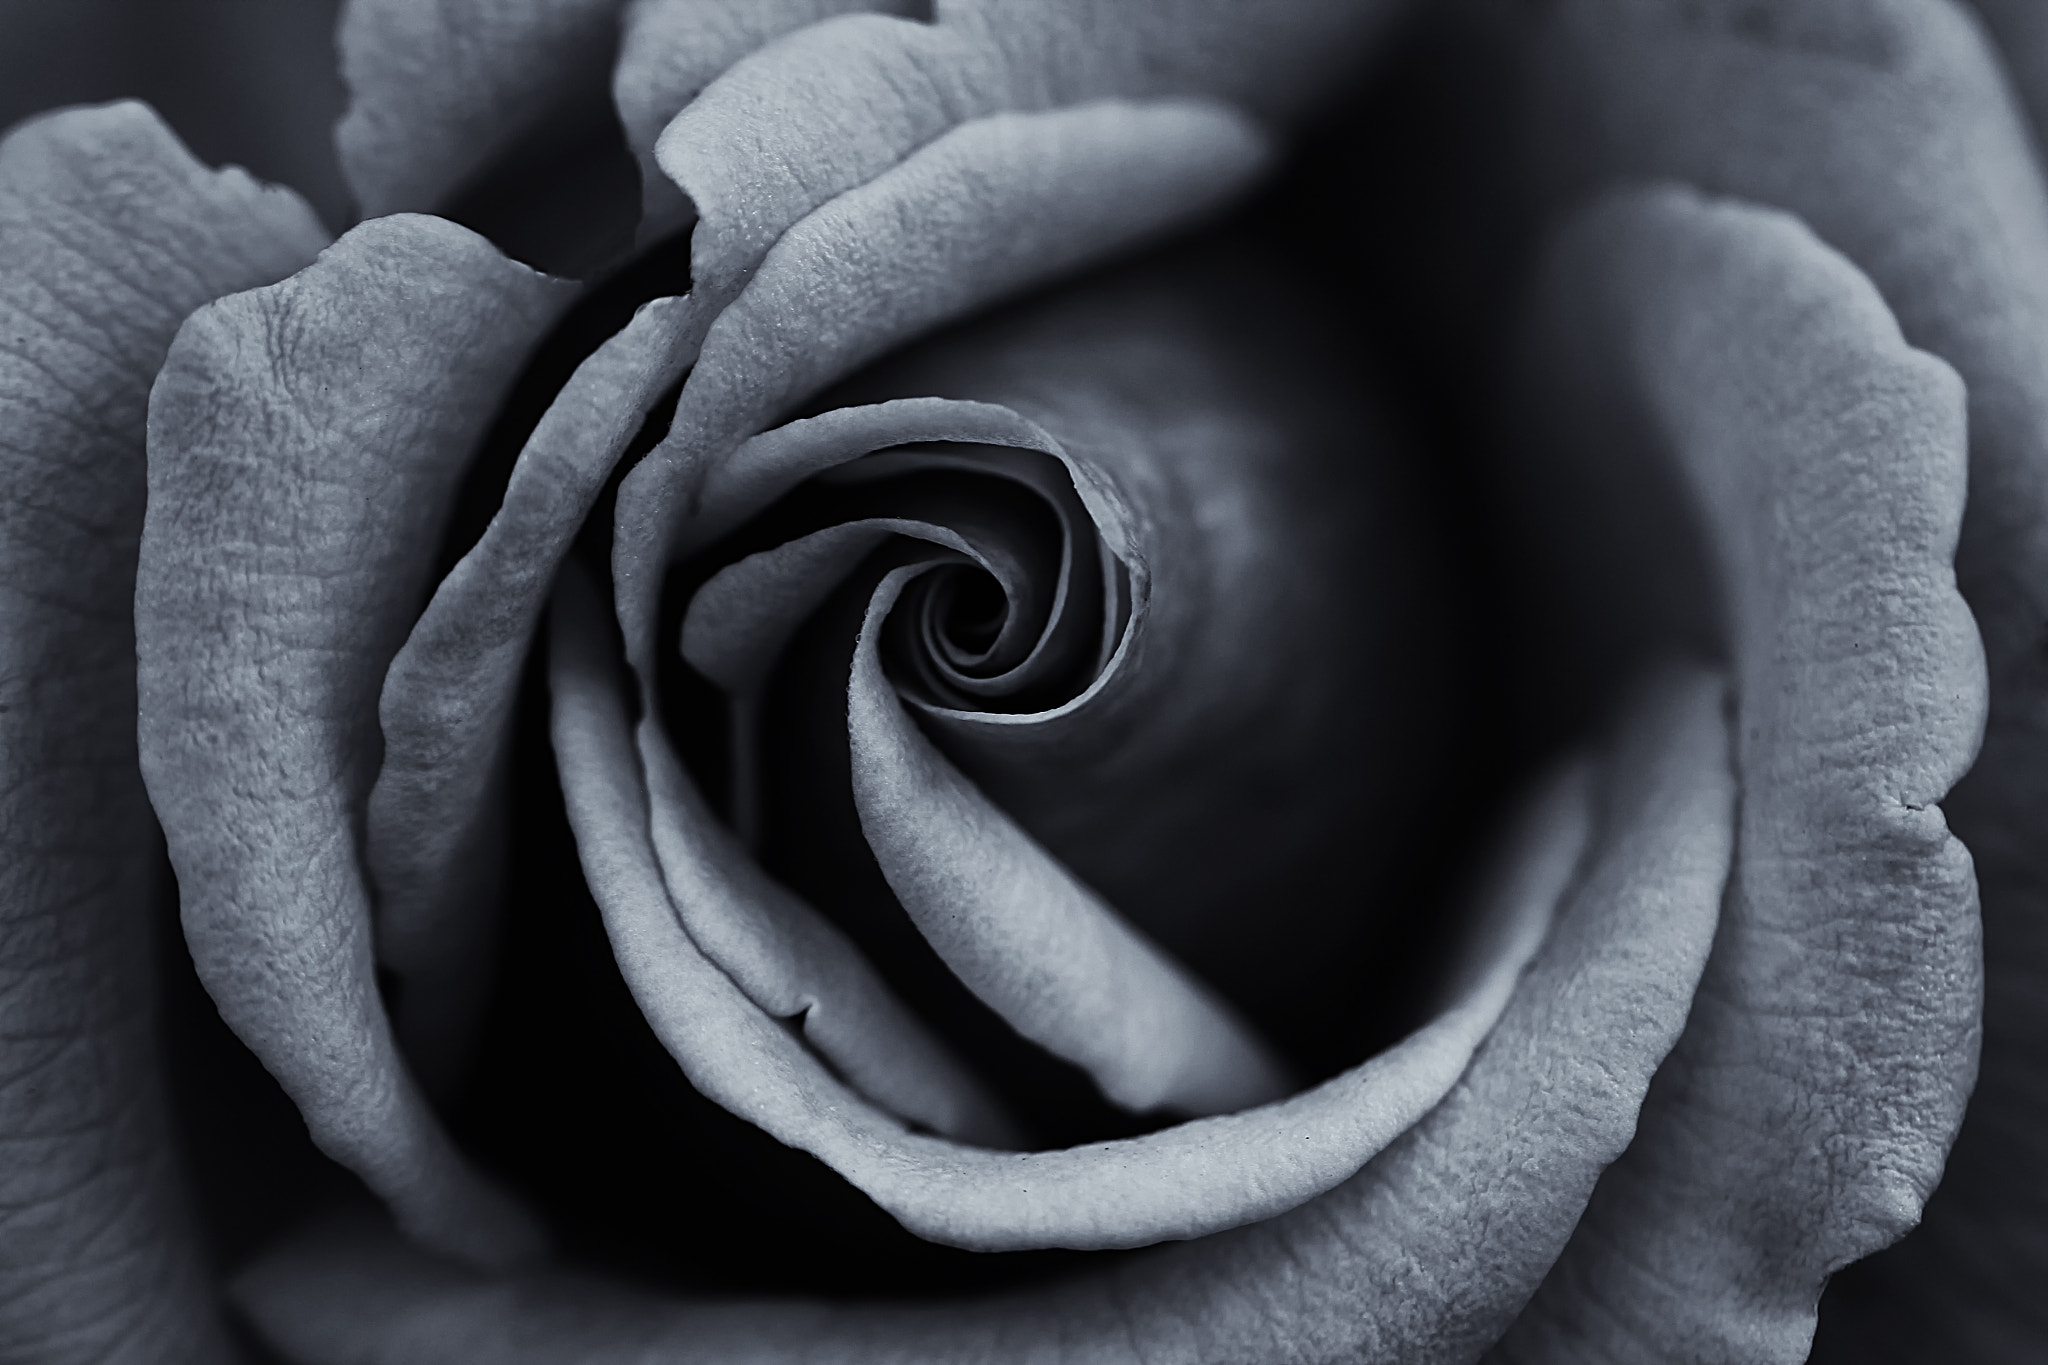 Photograph Black and White Rose by Georgina Gomez on 500px